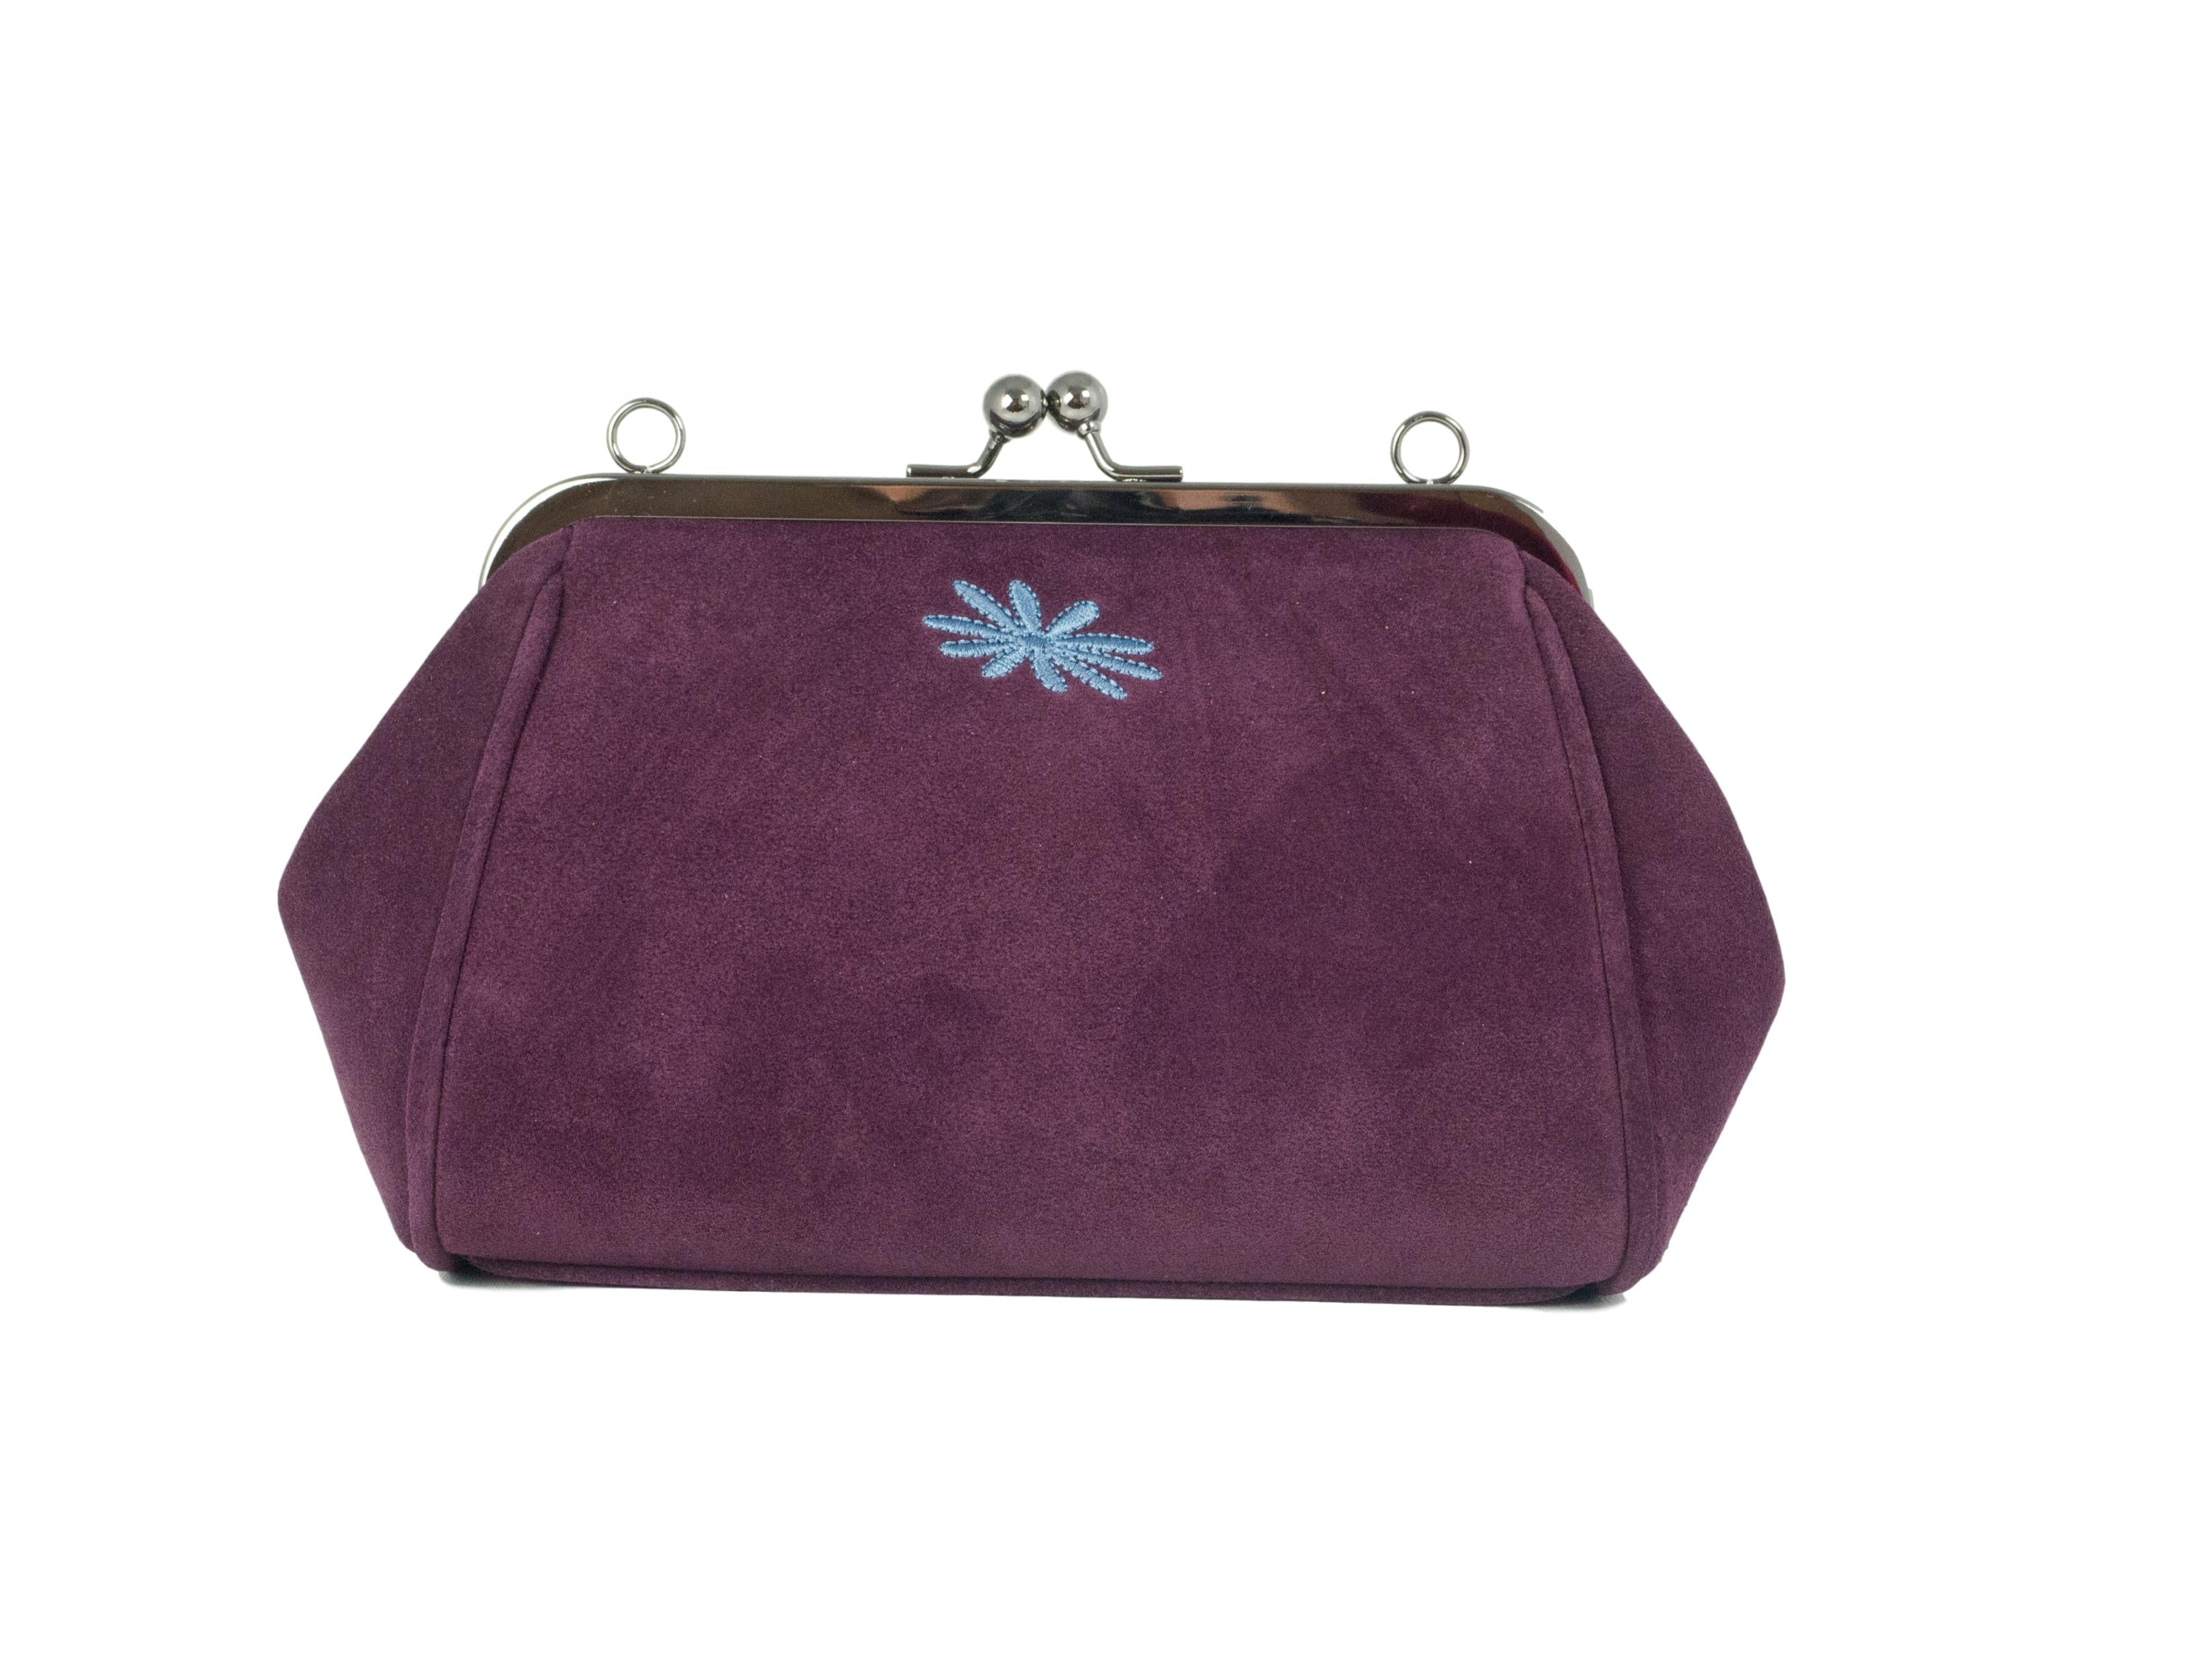 berry purple suede leather clutch purse style bag